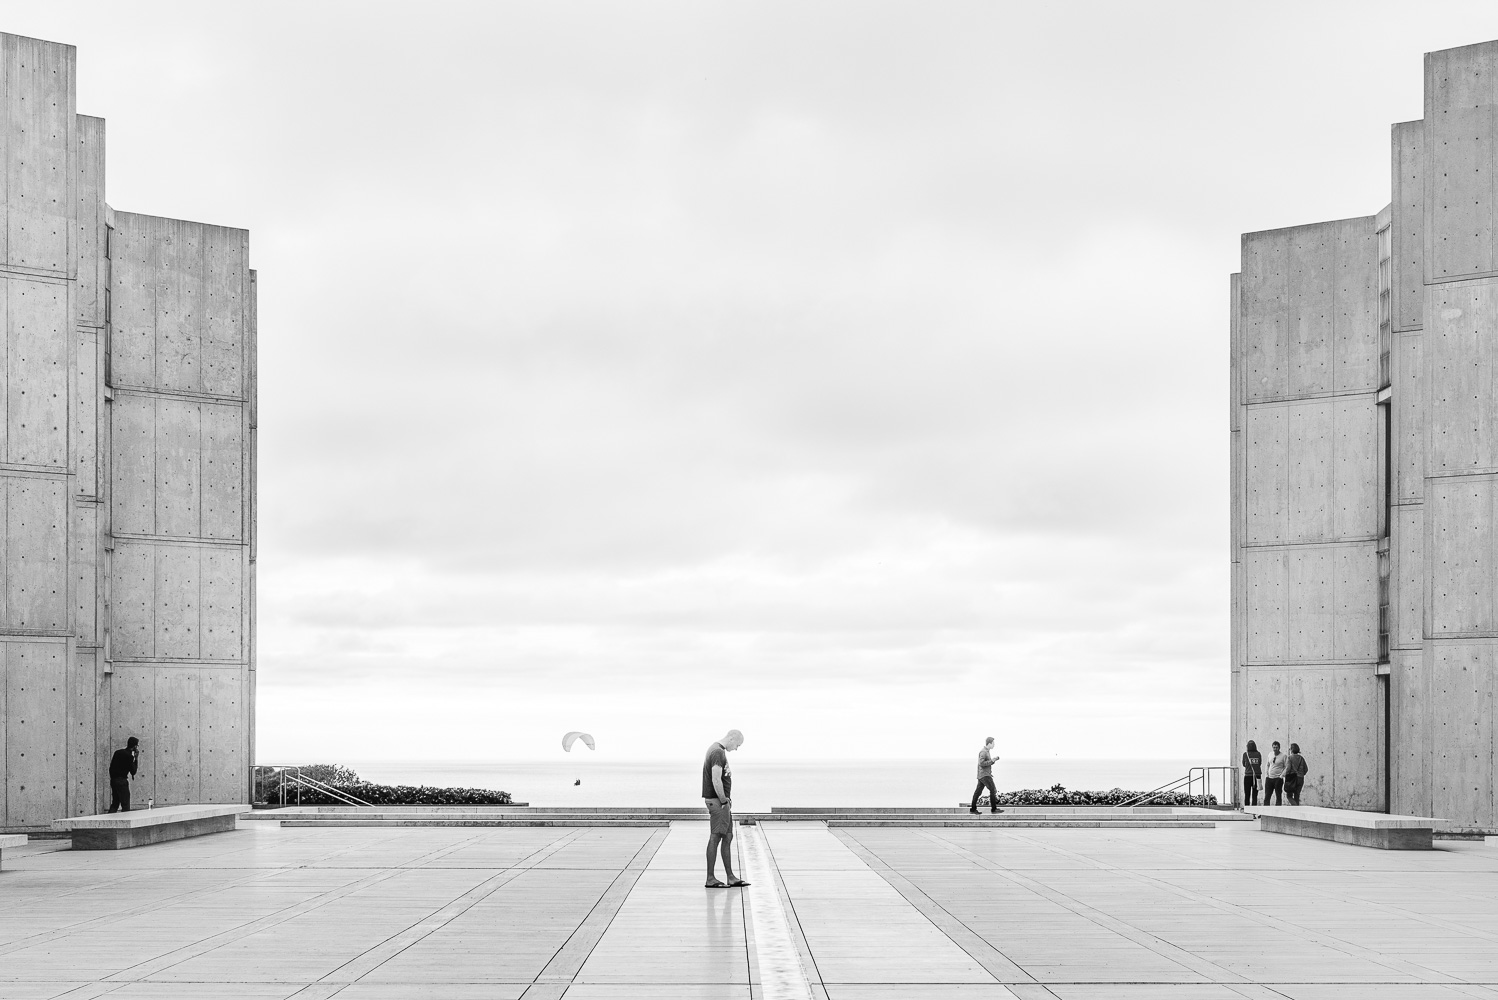 dacian-groza-concrete-black-and-white-architectural-photography-12-7980.jpg